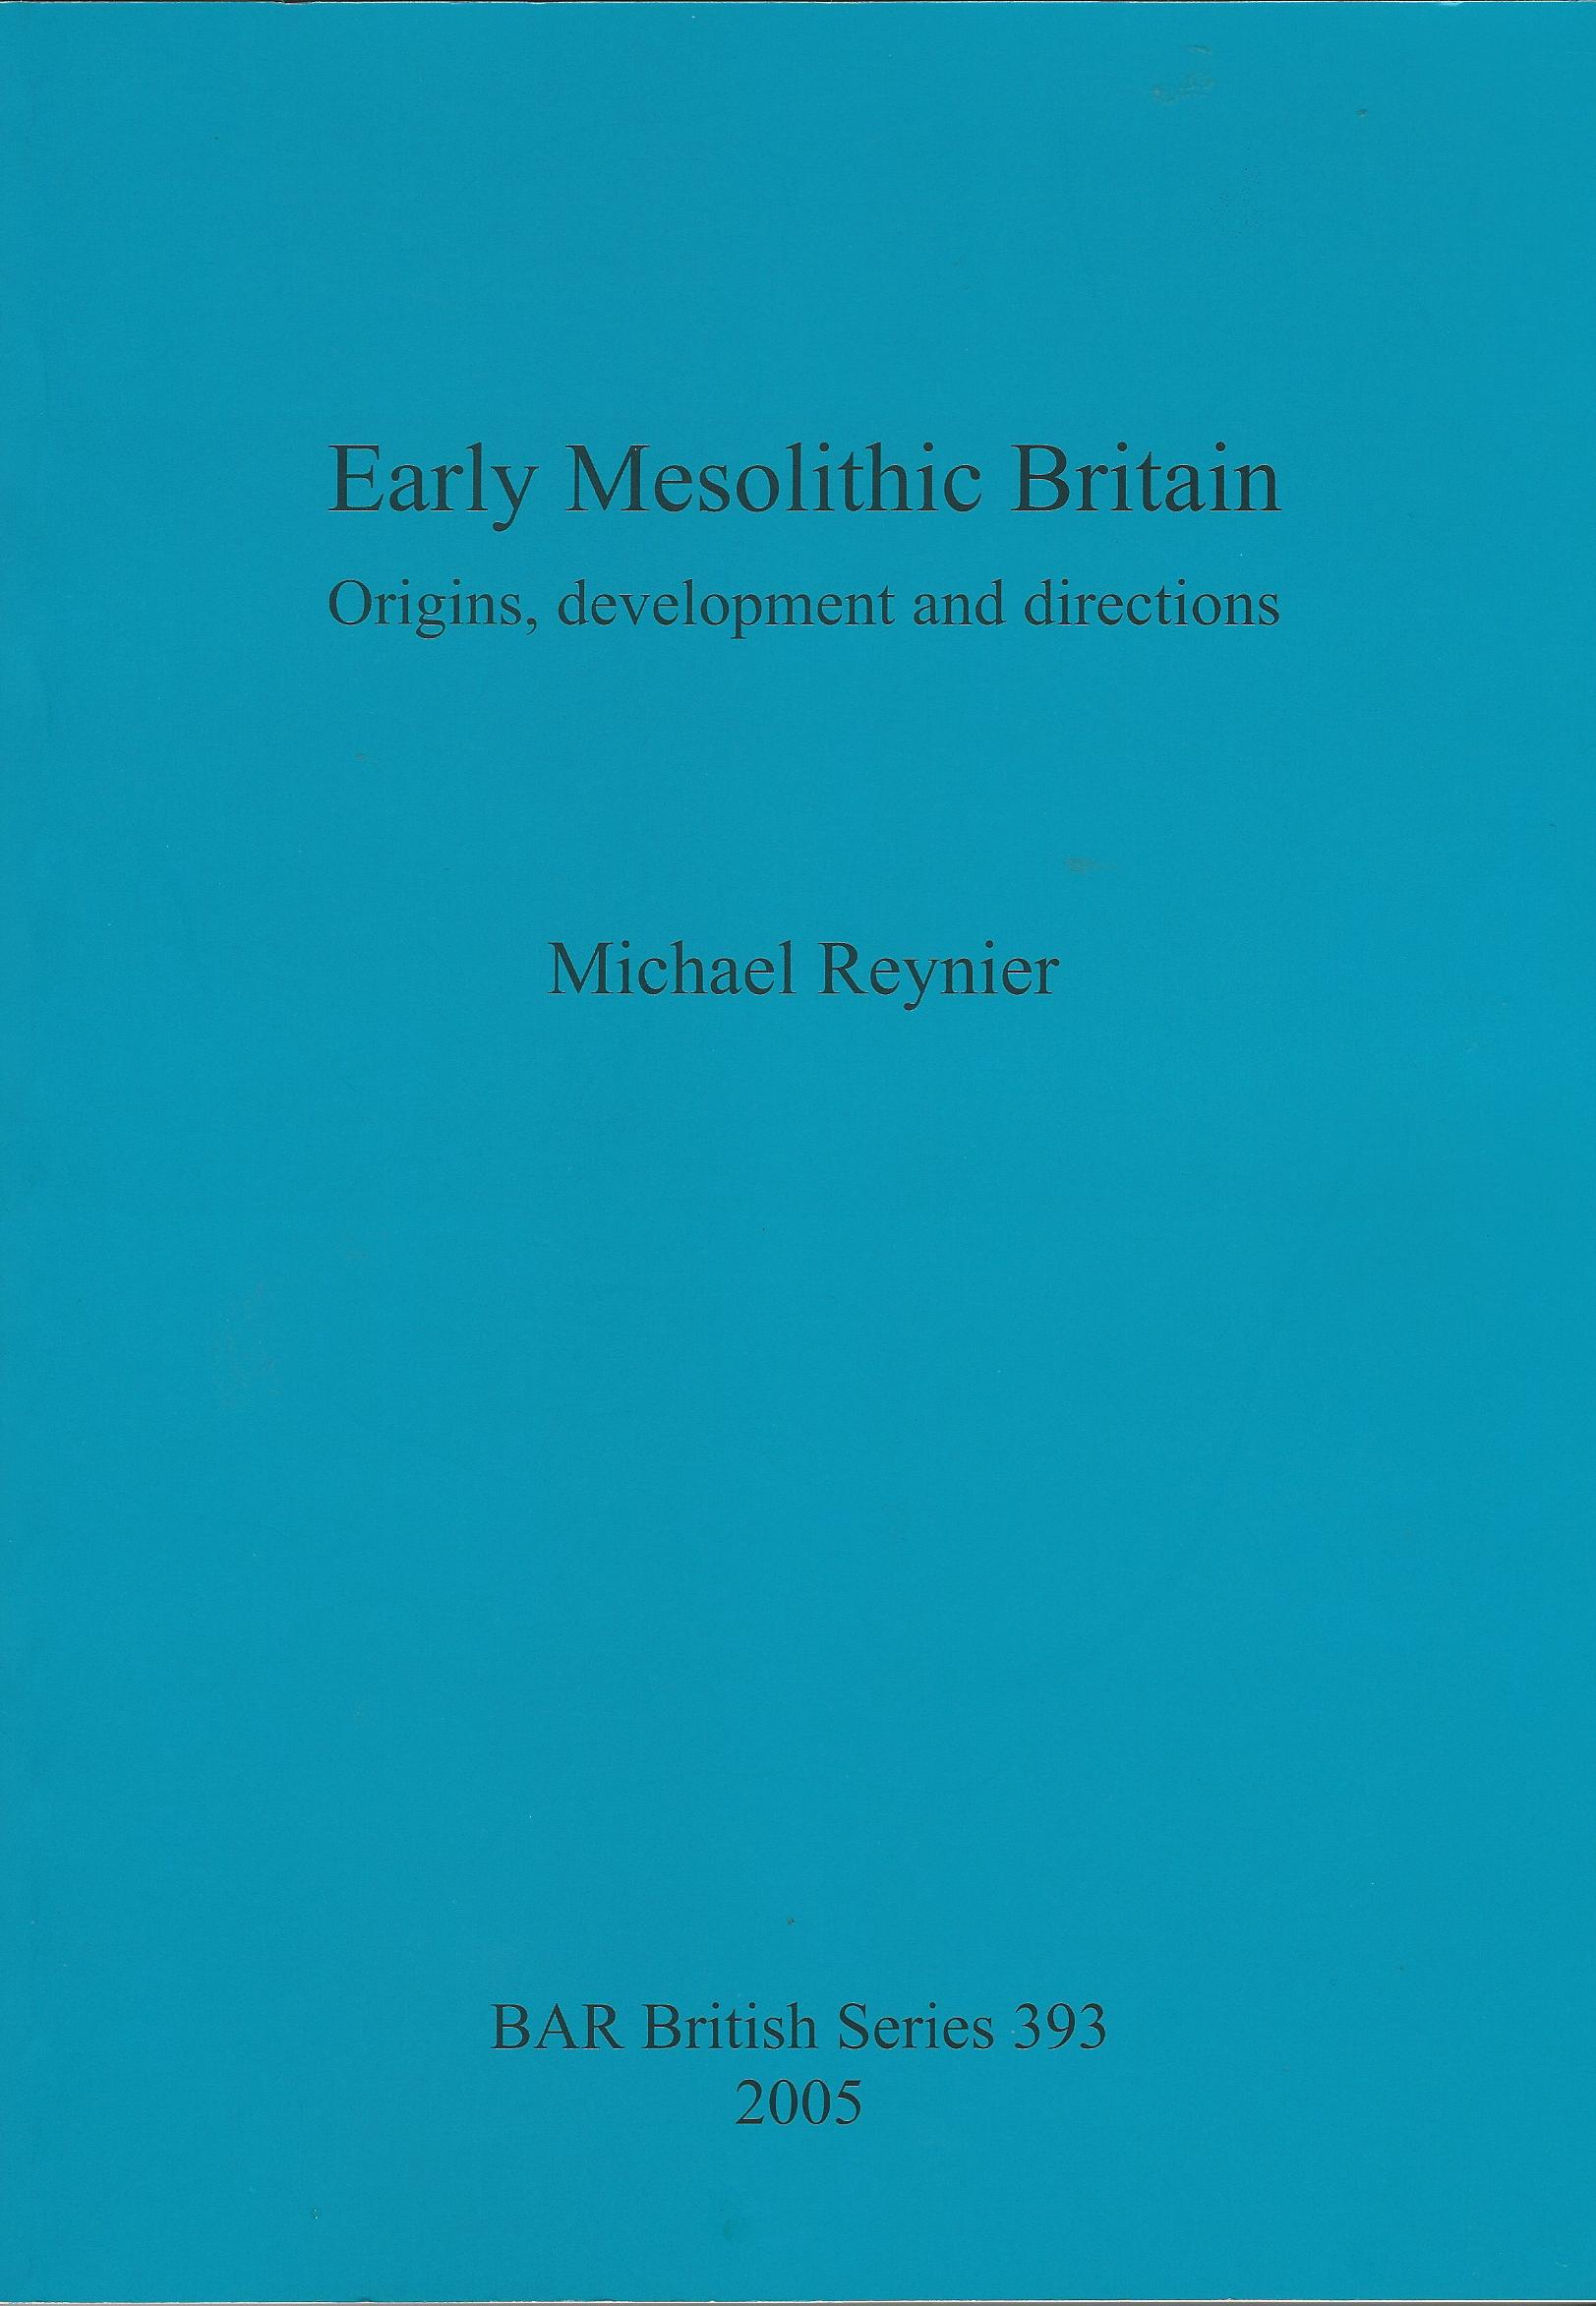 Image for Early Mesolithic Britain: Origins, development and directions (BAR British Series)